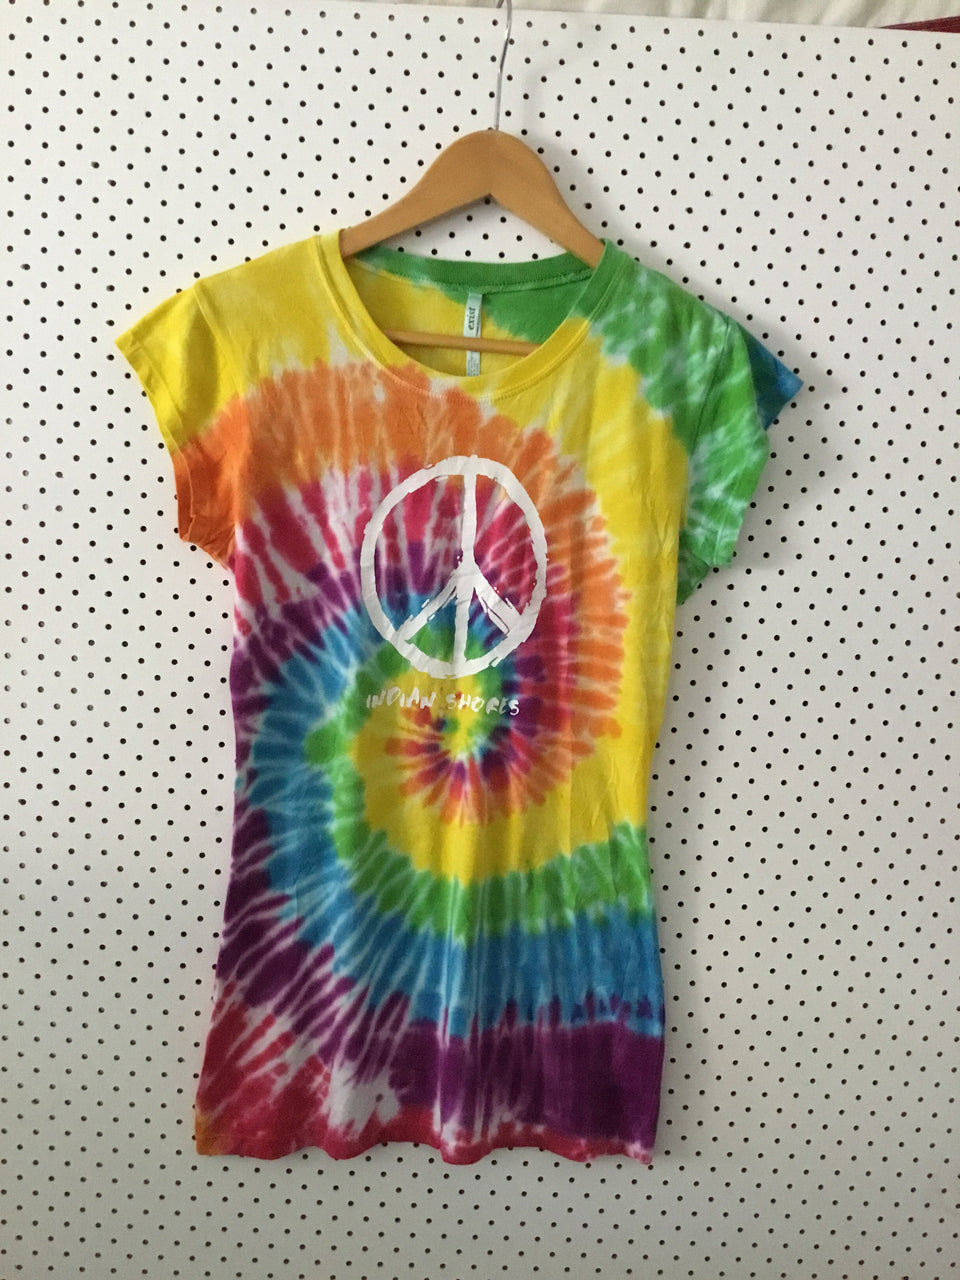 1348 Peace sign tie dye tee